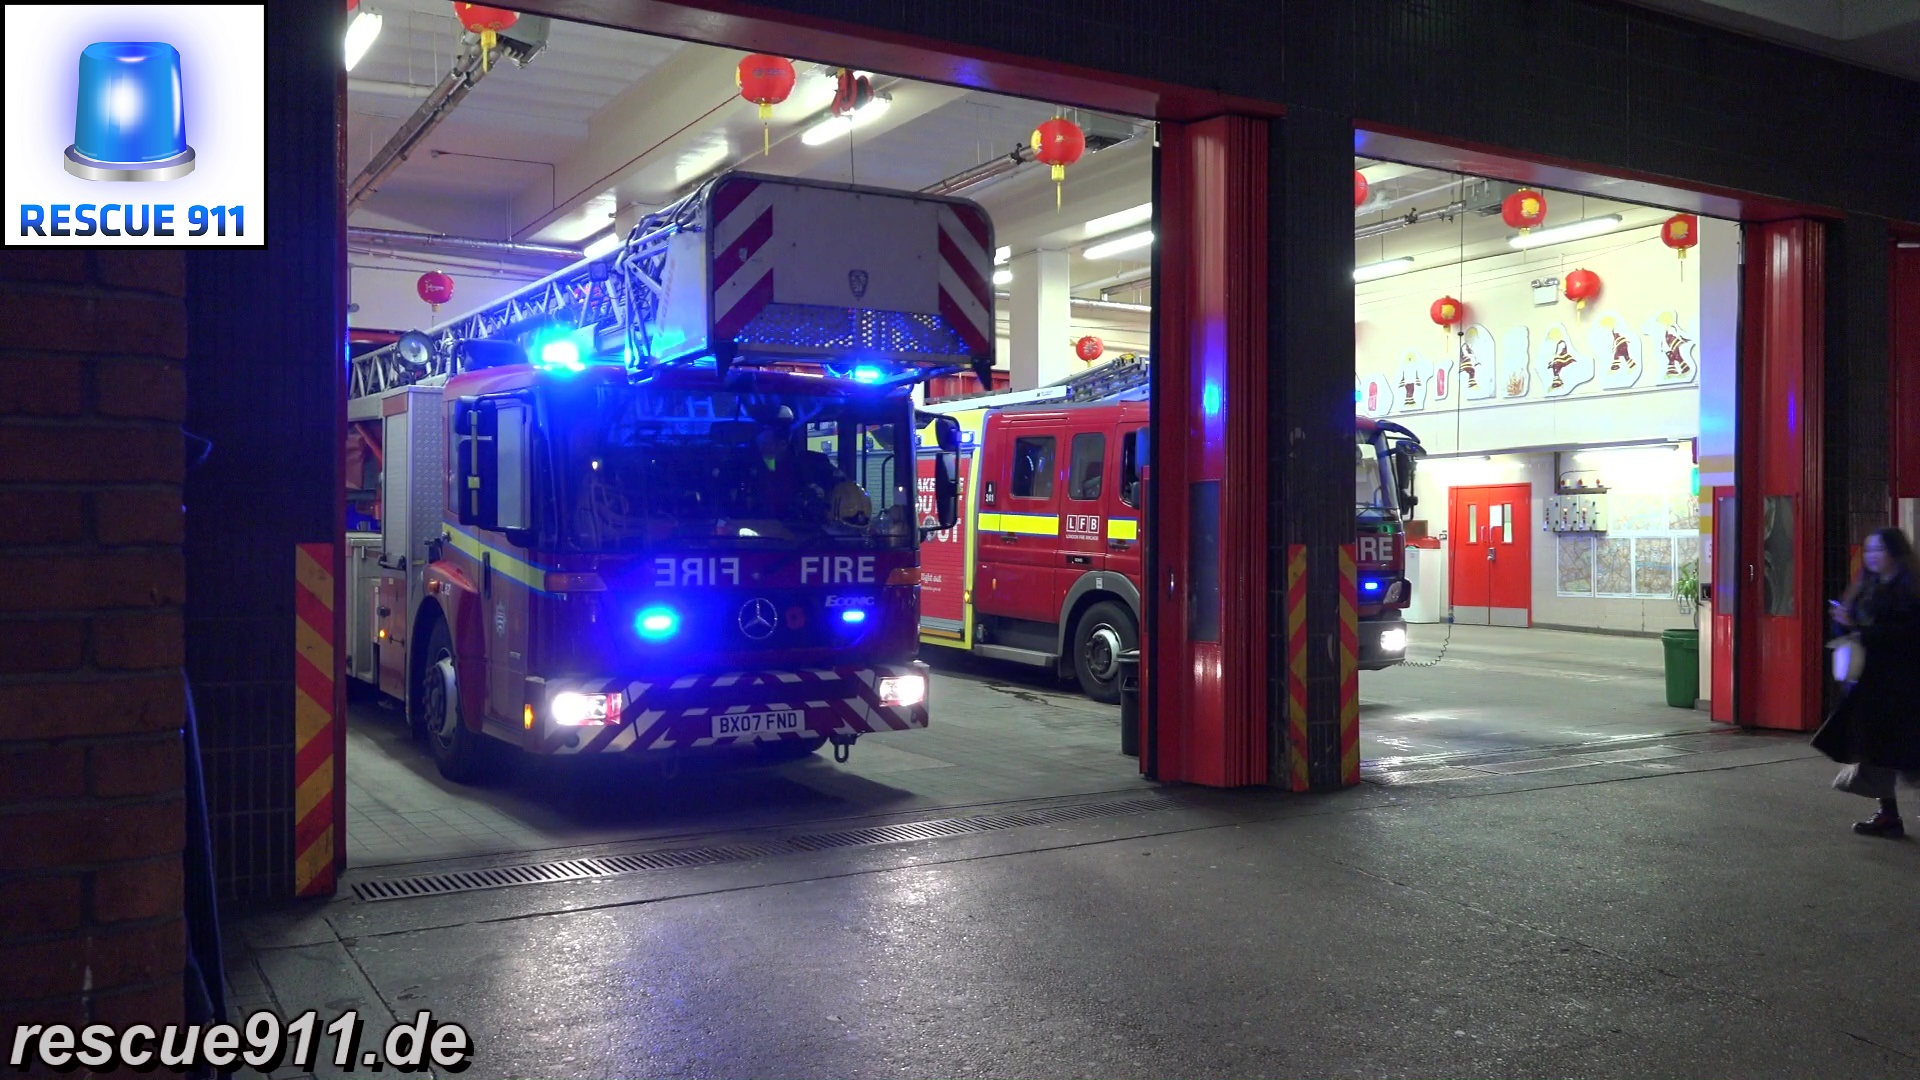 Turntable Ladder A243 + Pump Ladder A241 LFB Soho (stream)